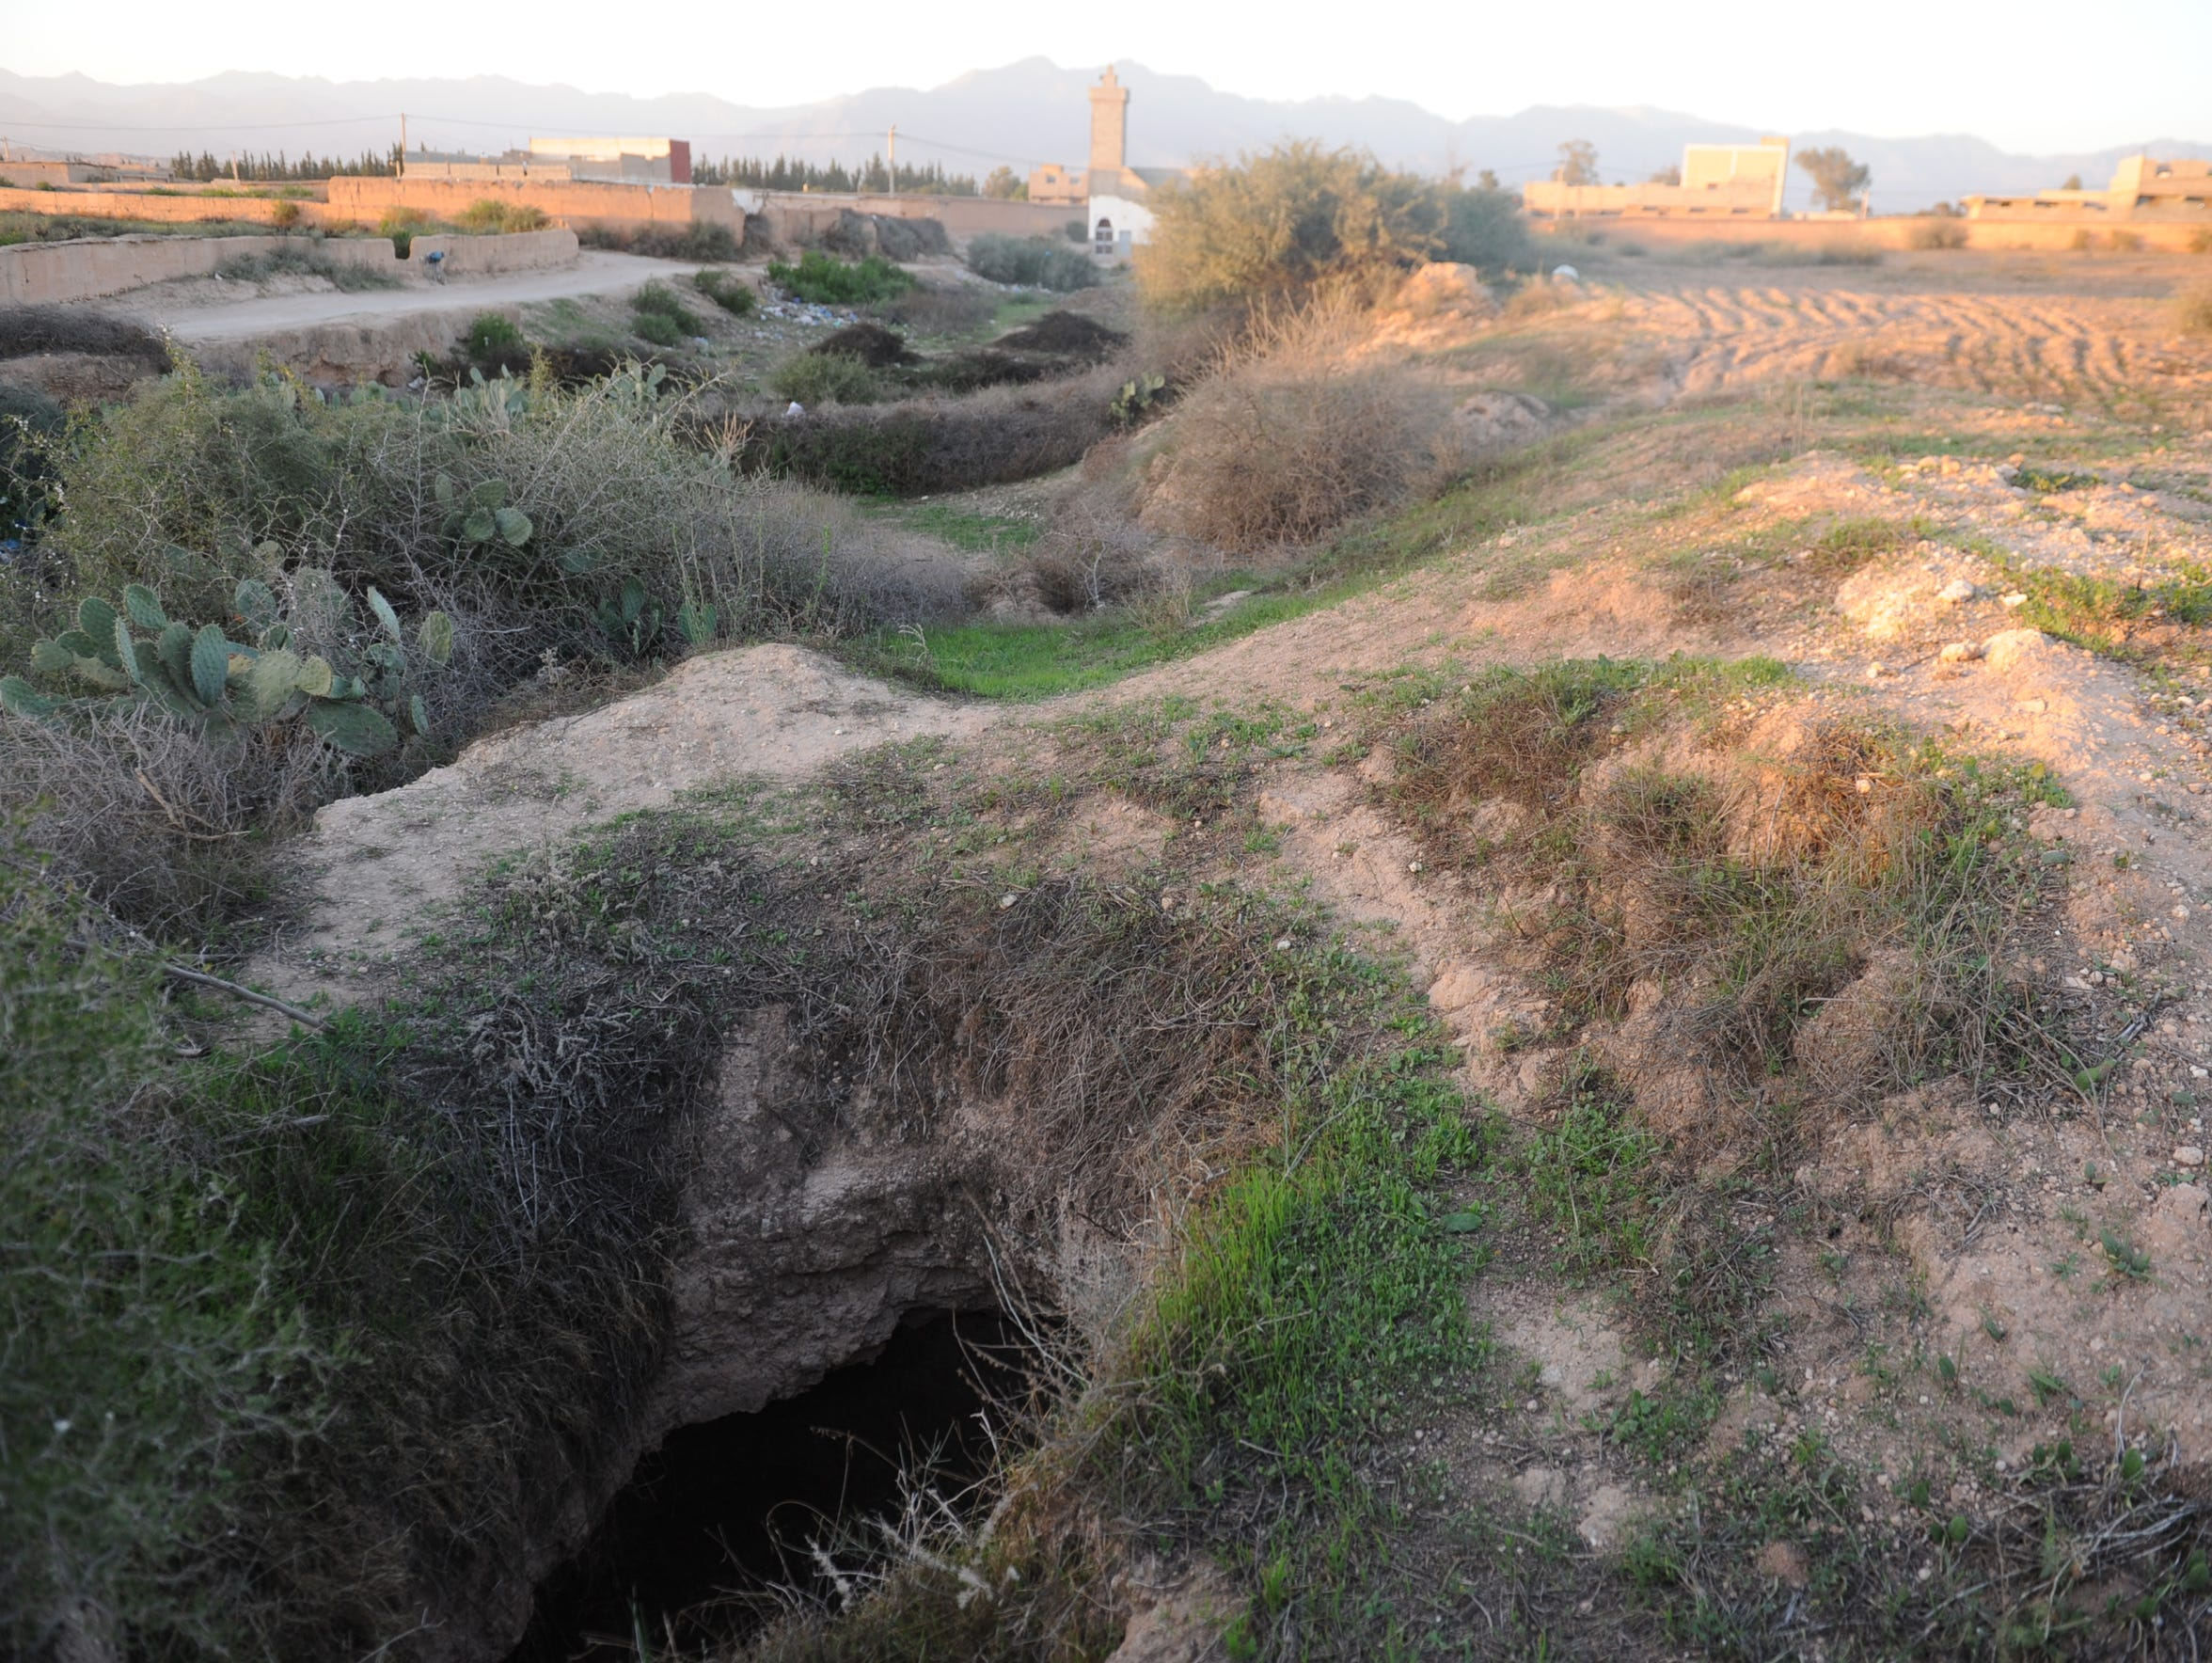 Moroccans once used underground irrigation tunnels